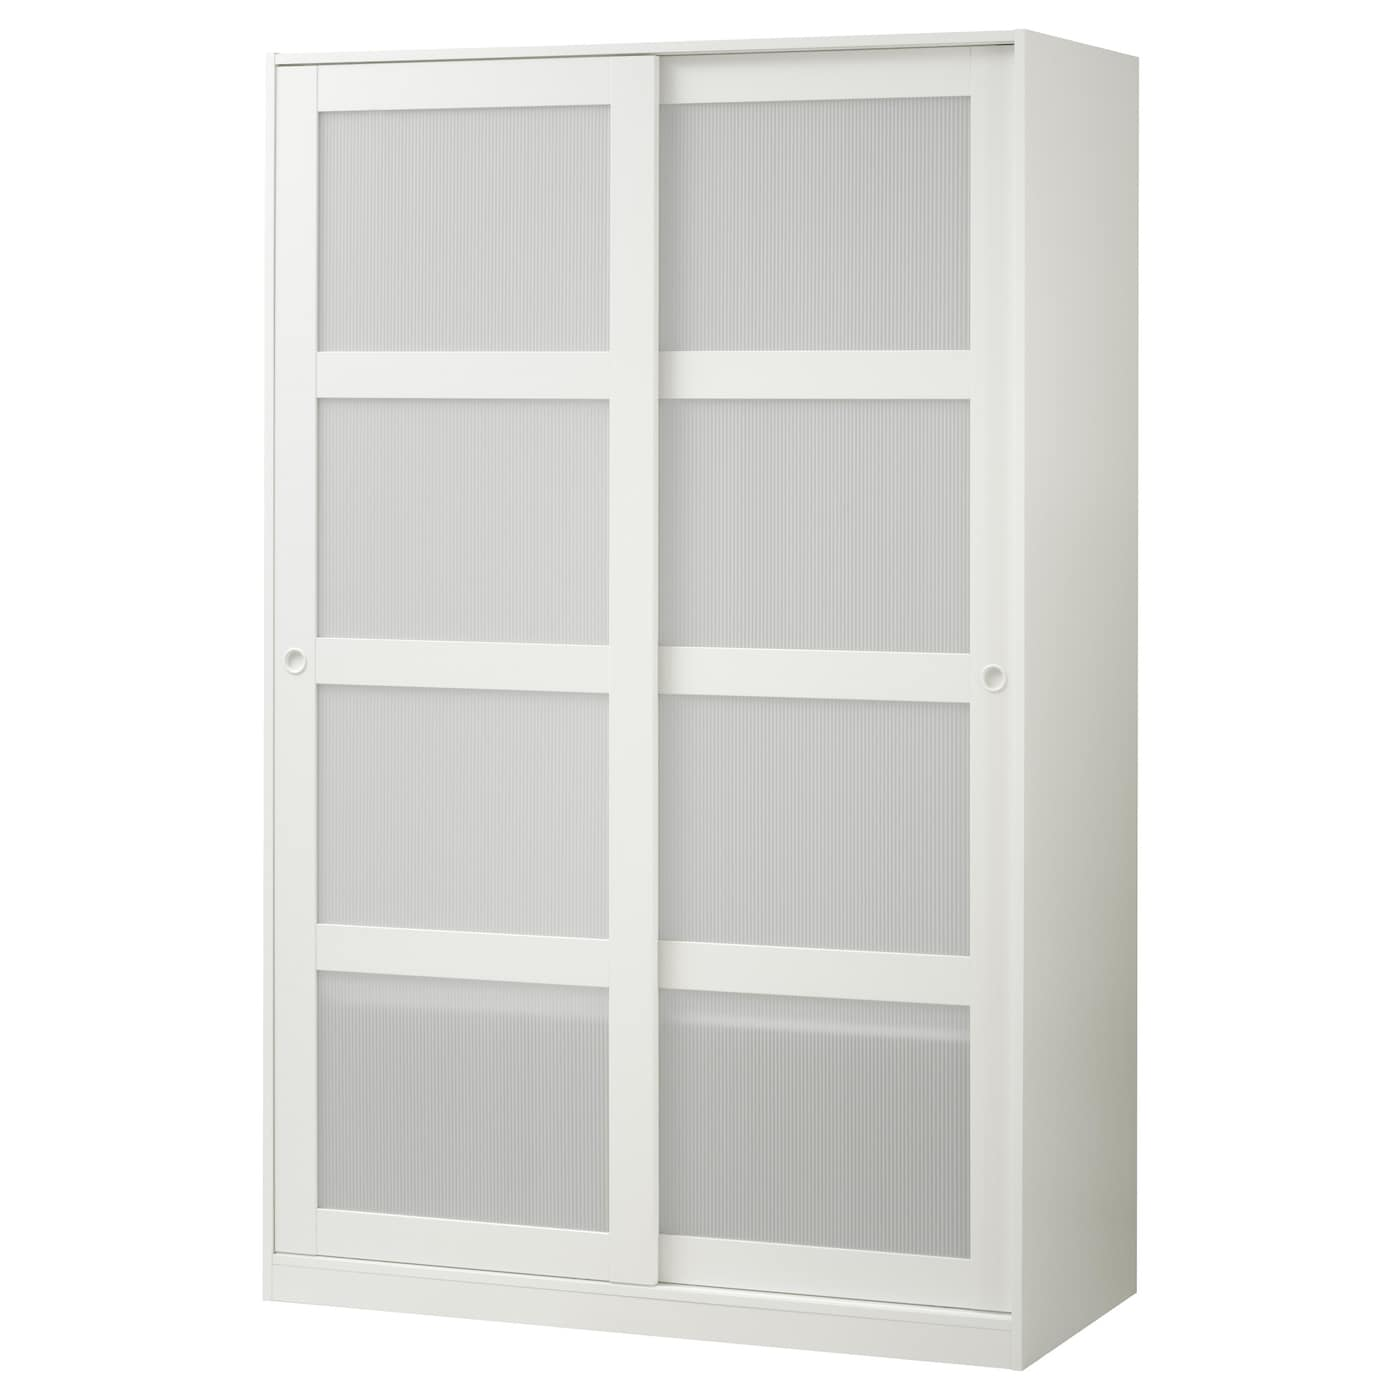 ikea kvikne wardrobe with 2 sliding doors customise the space with the